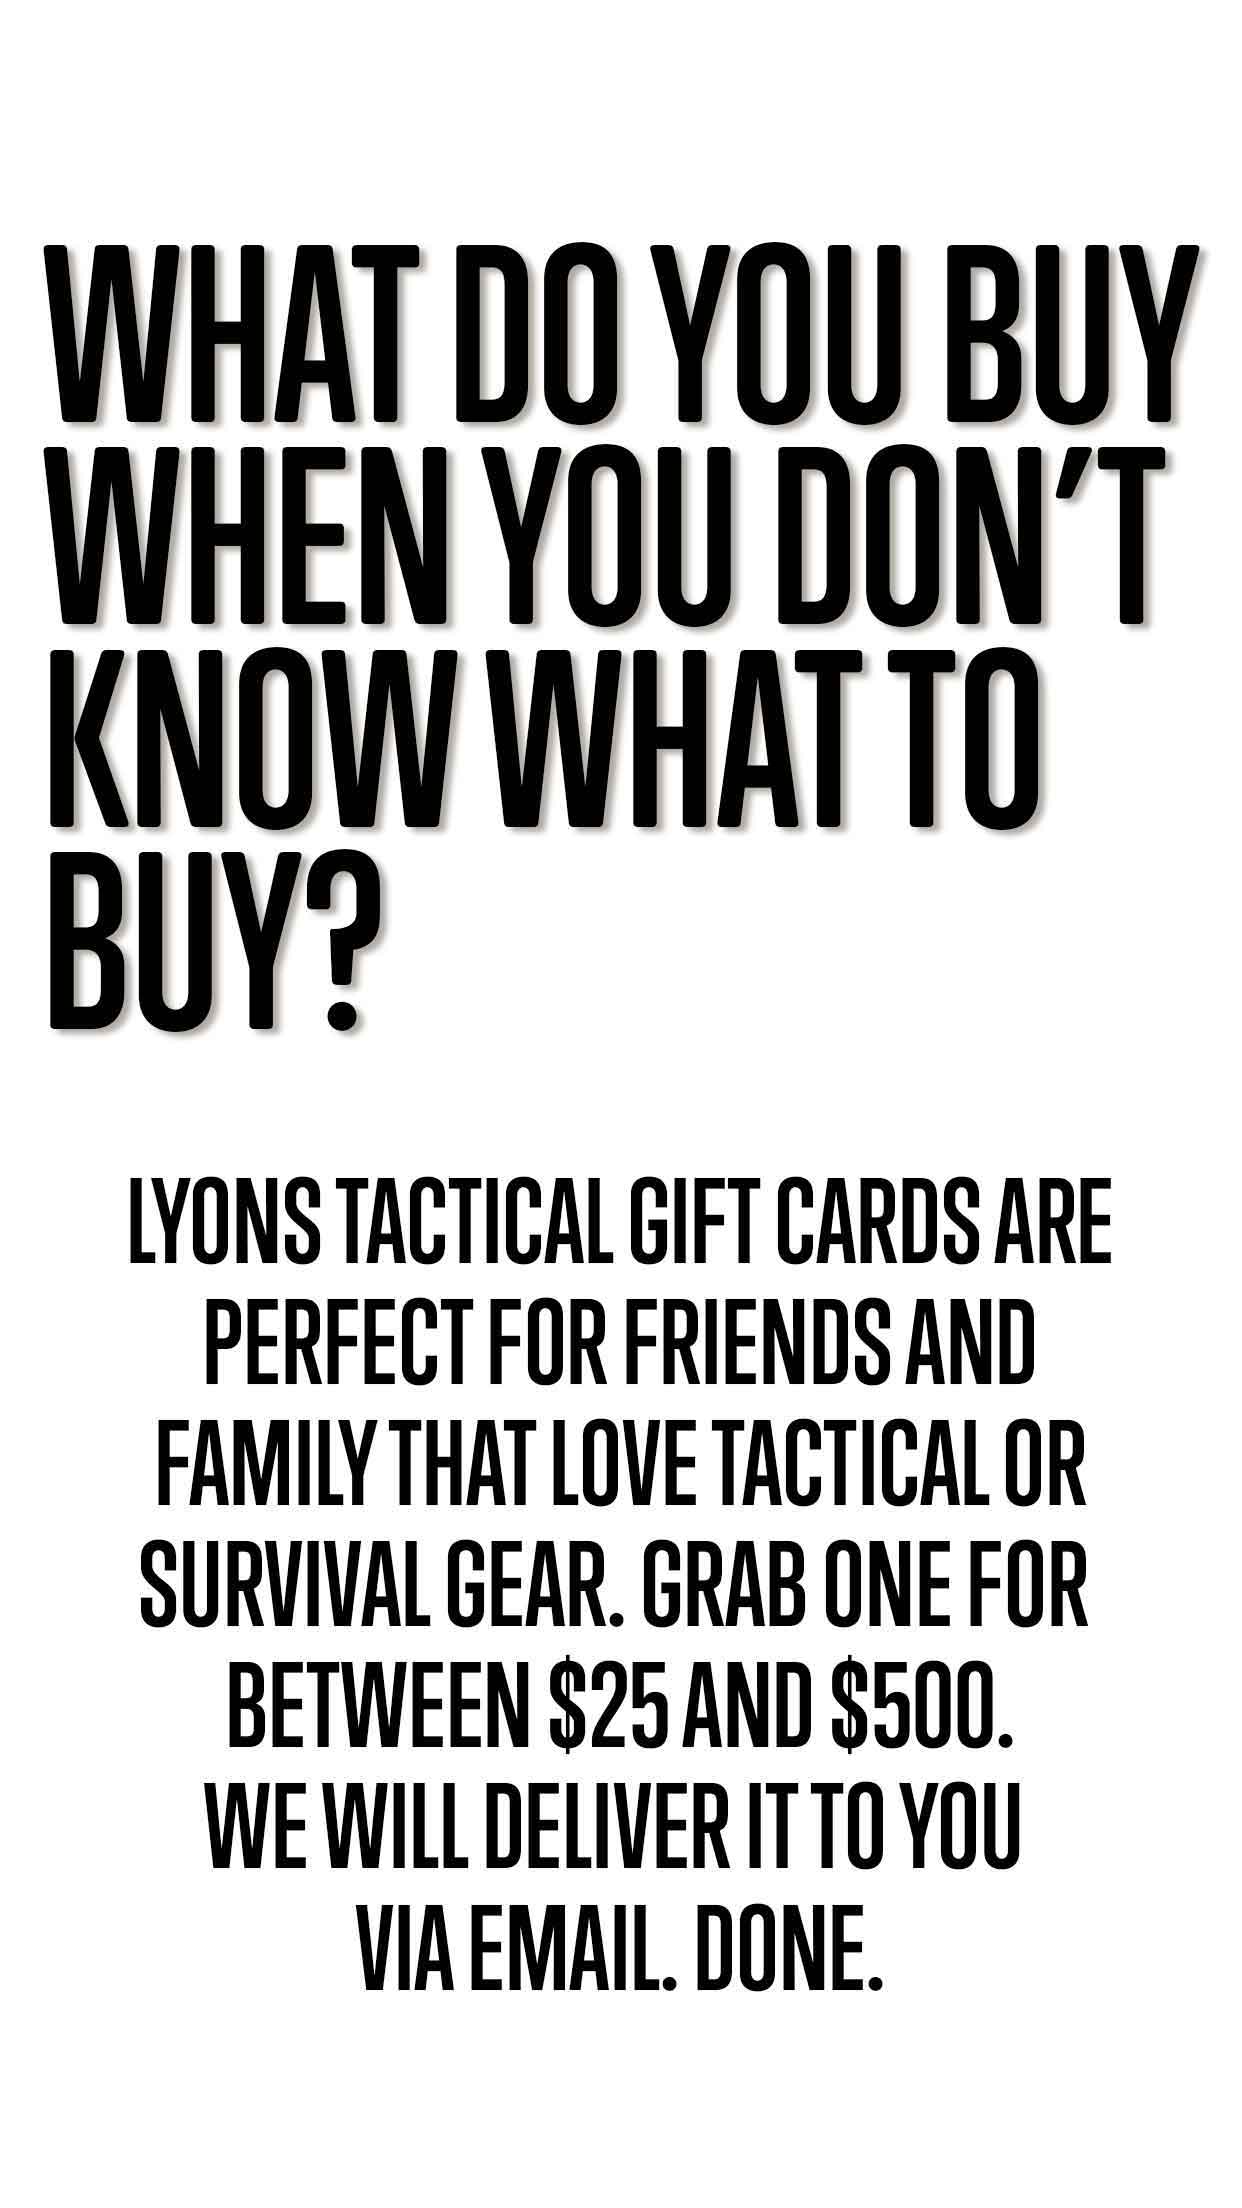 picture promoting buying gift cards